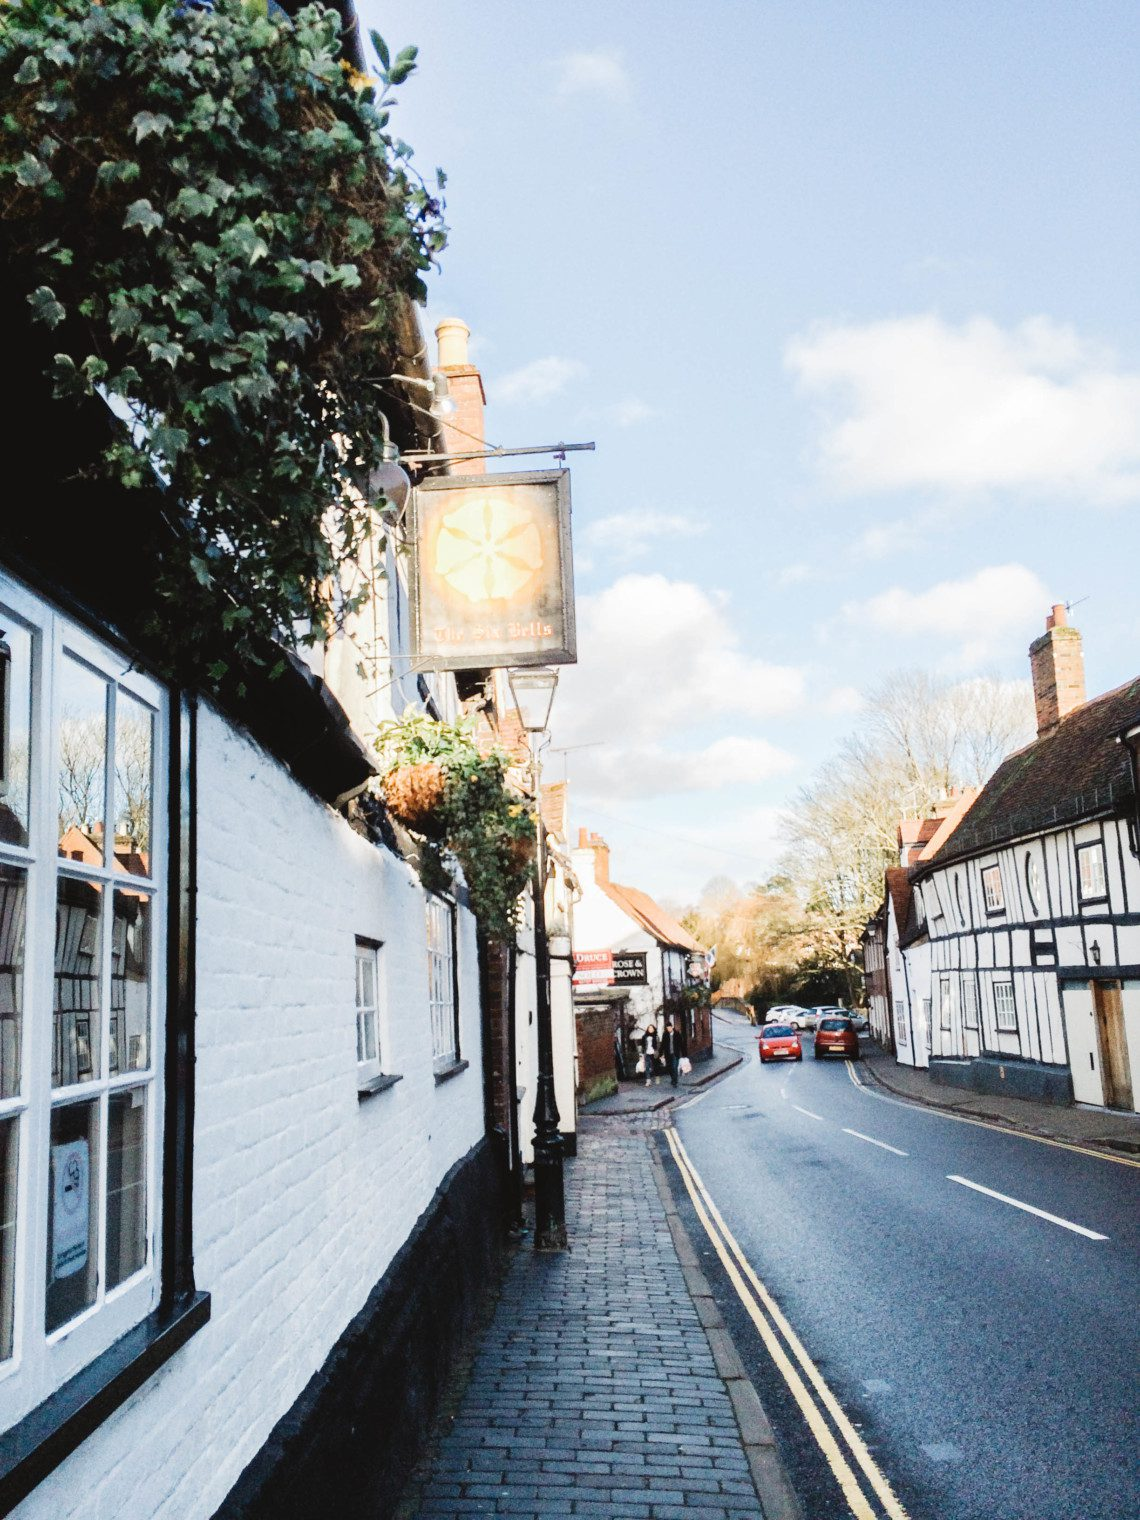 Looking for day trips from London? This is a look at things to do in St. Albans, a beautiful cathedral city that makes an easy trip from London by train.